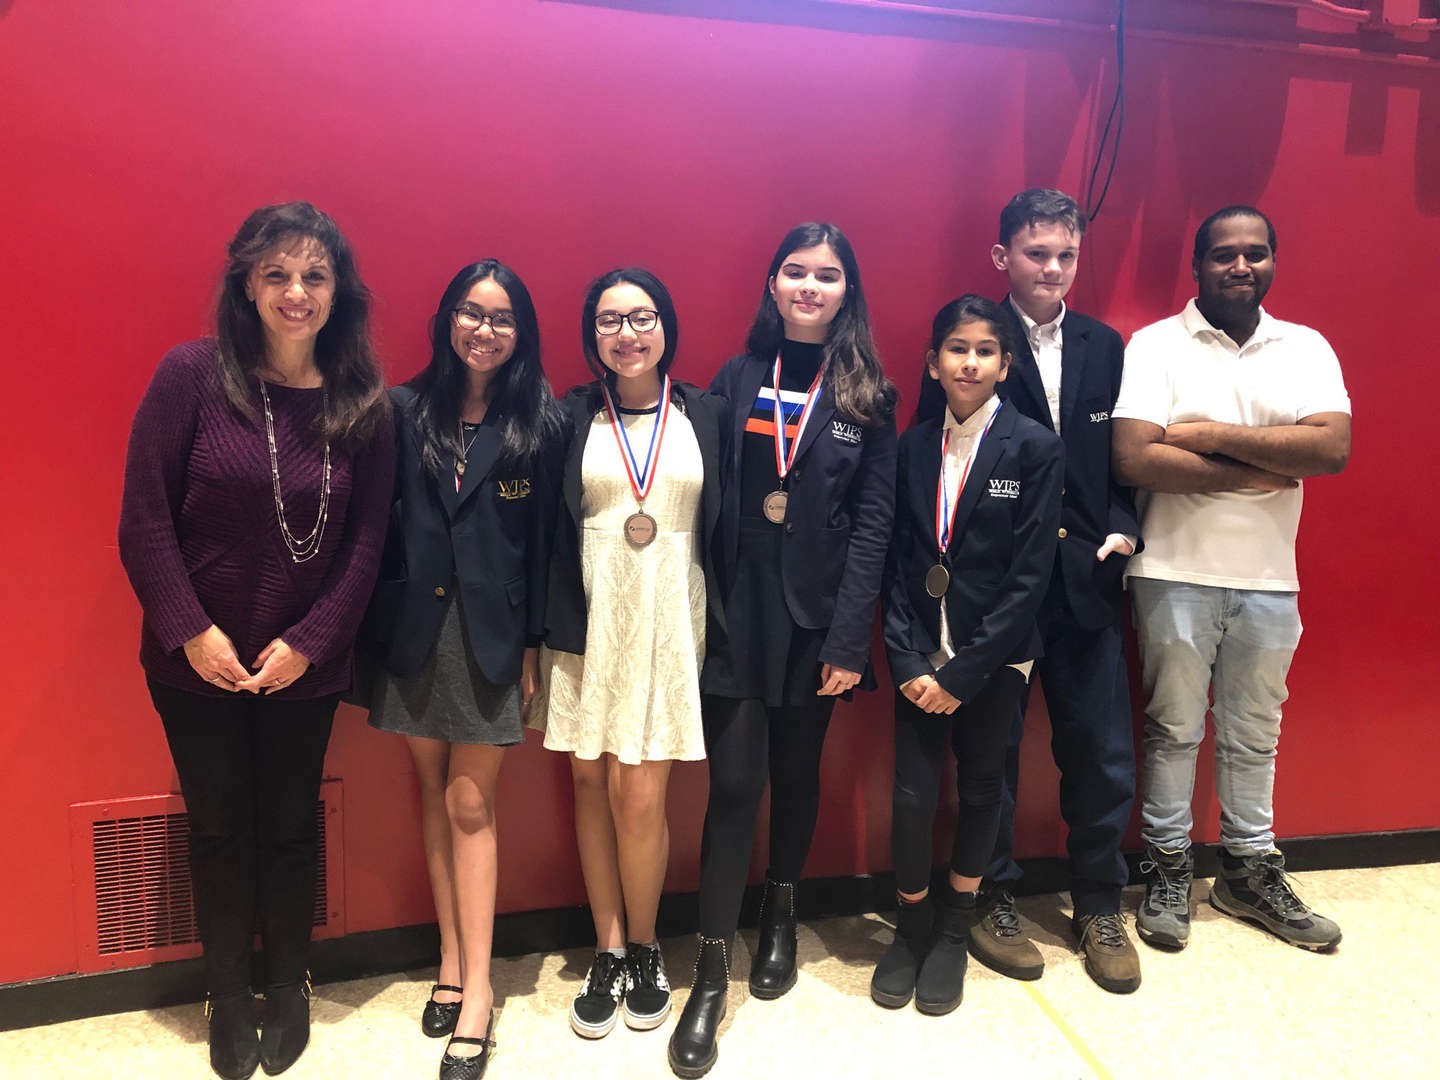 group of students with debate team medals